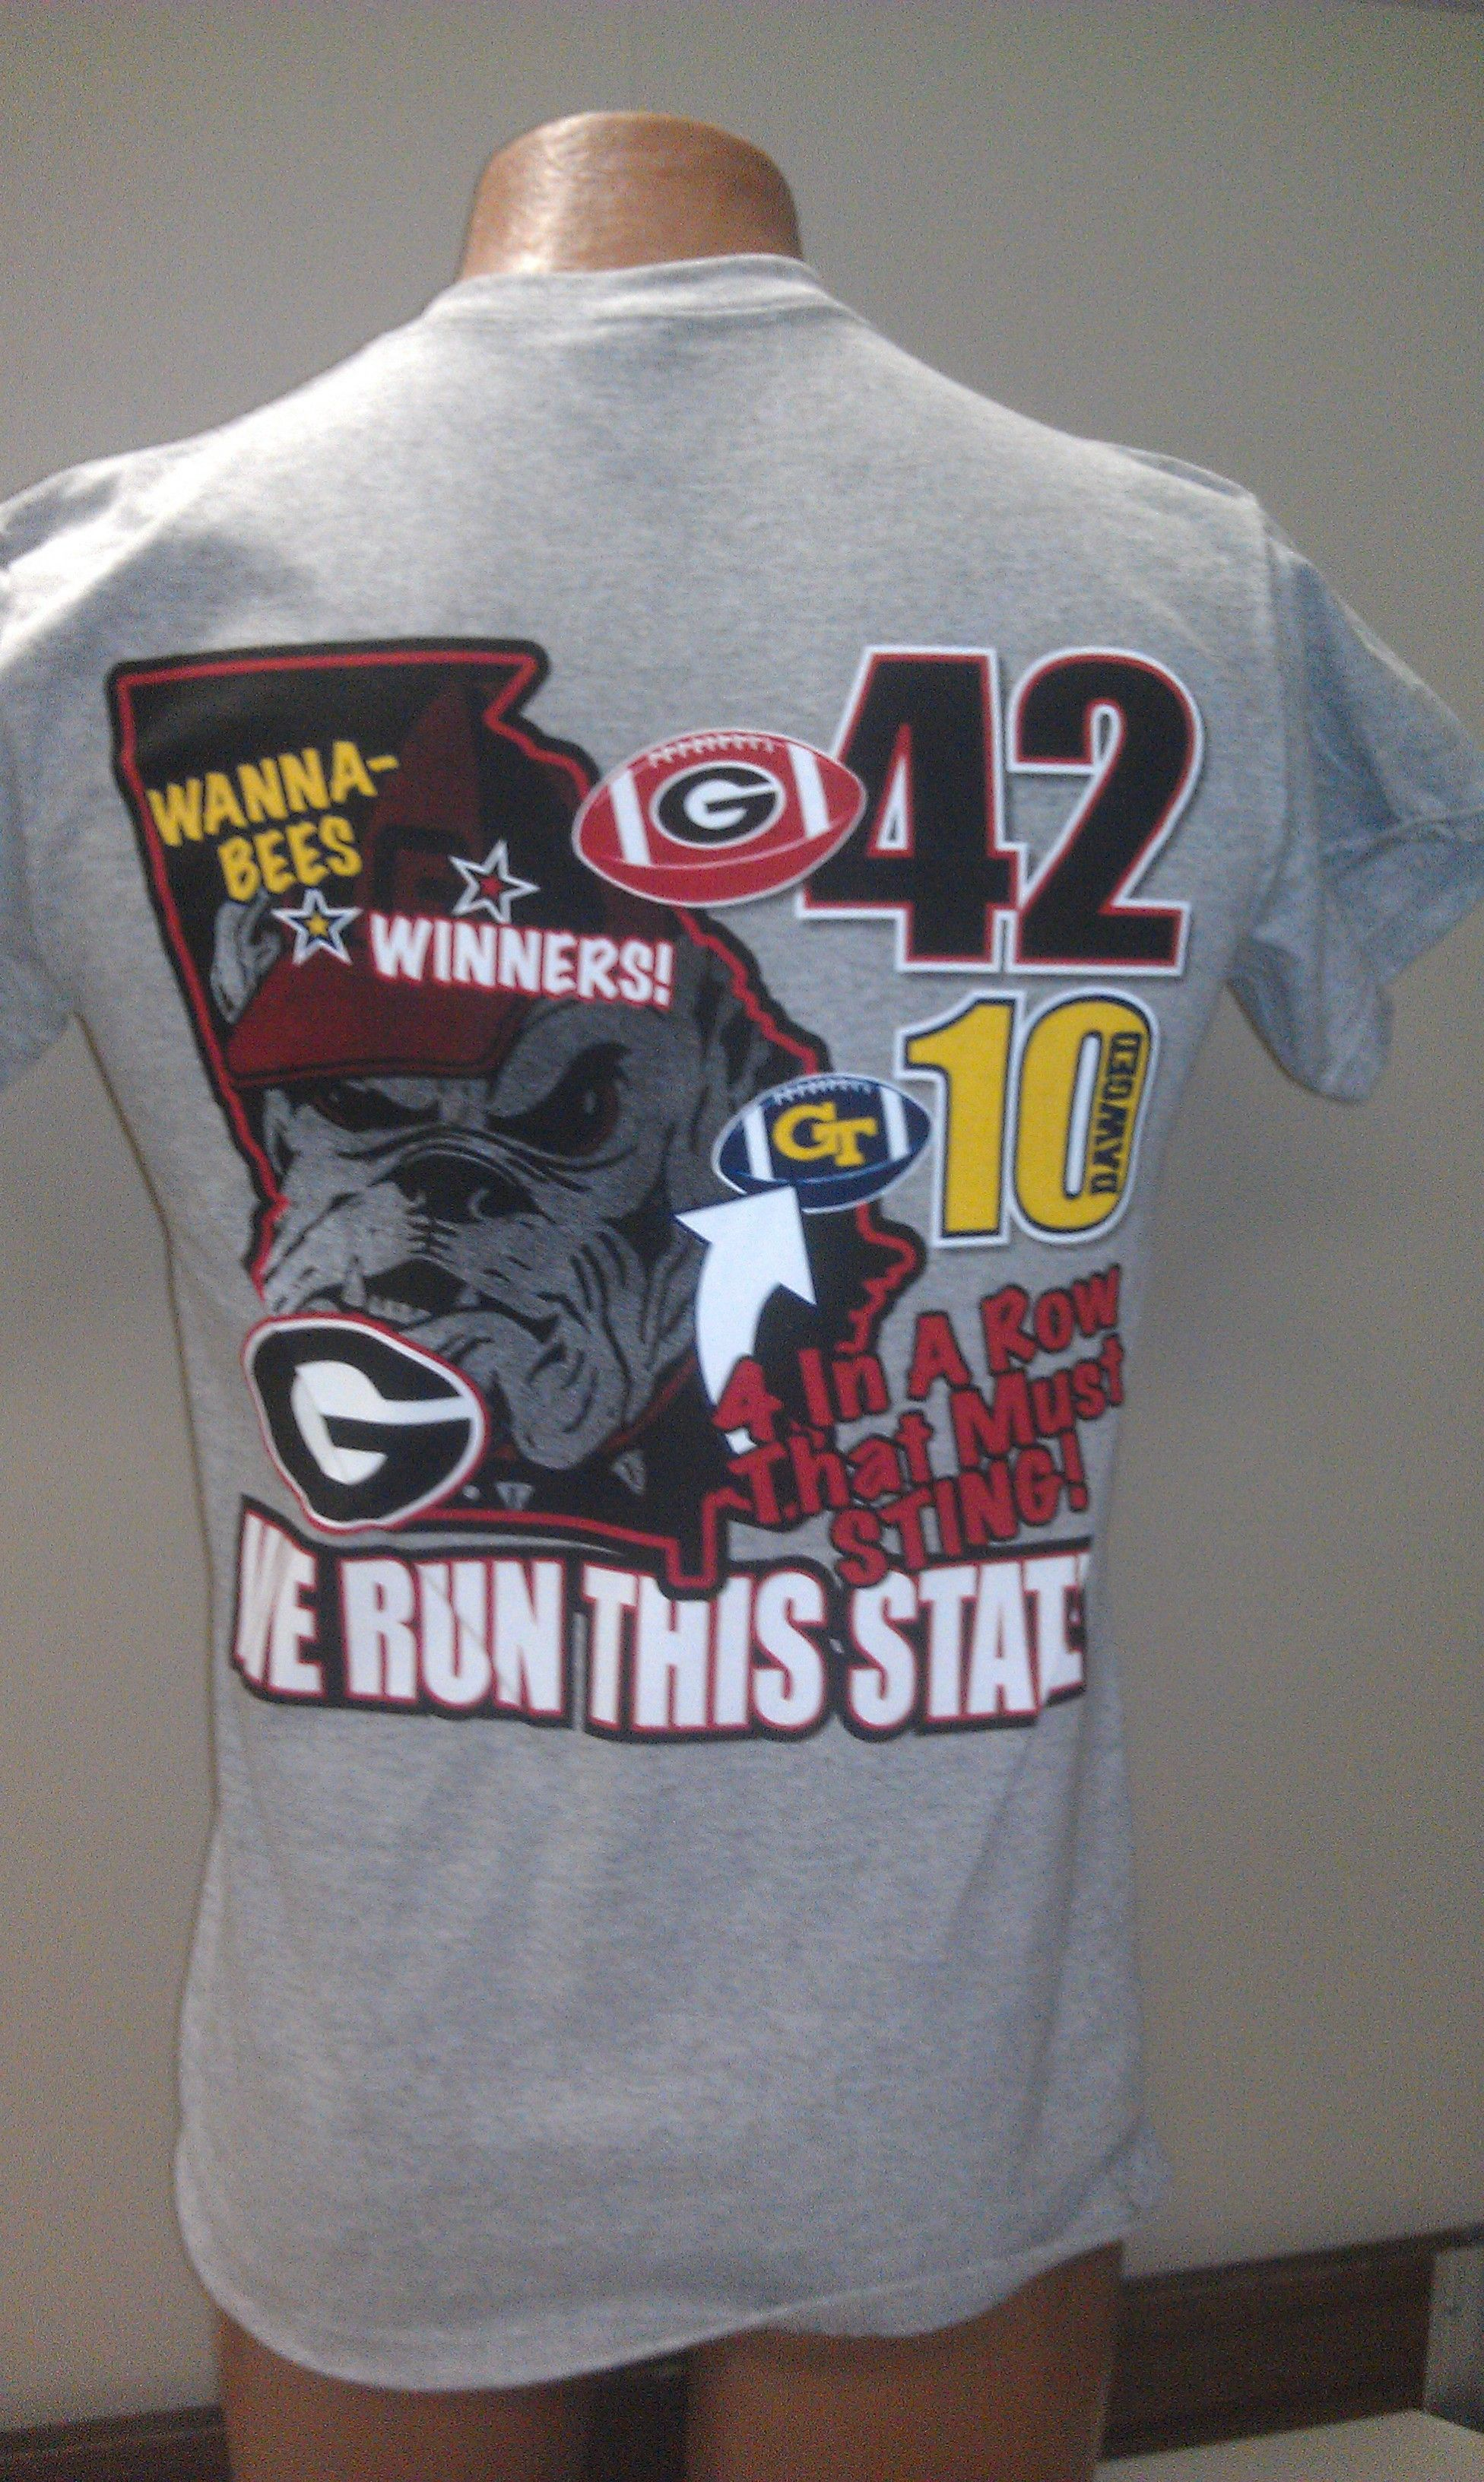 UGA beats Tech score shirt ls on ash 16.99